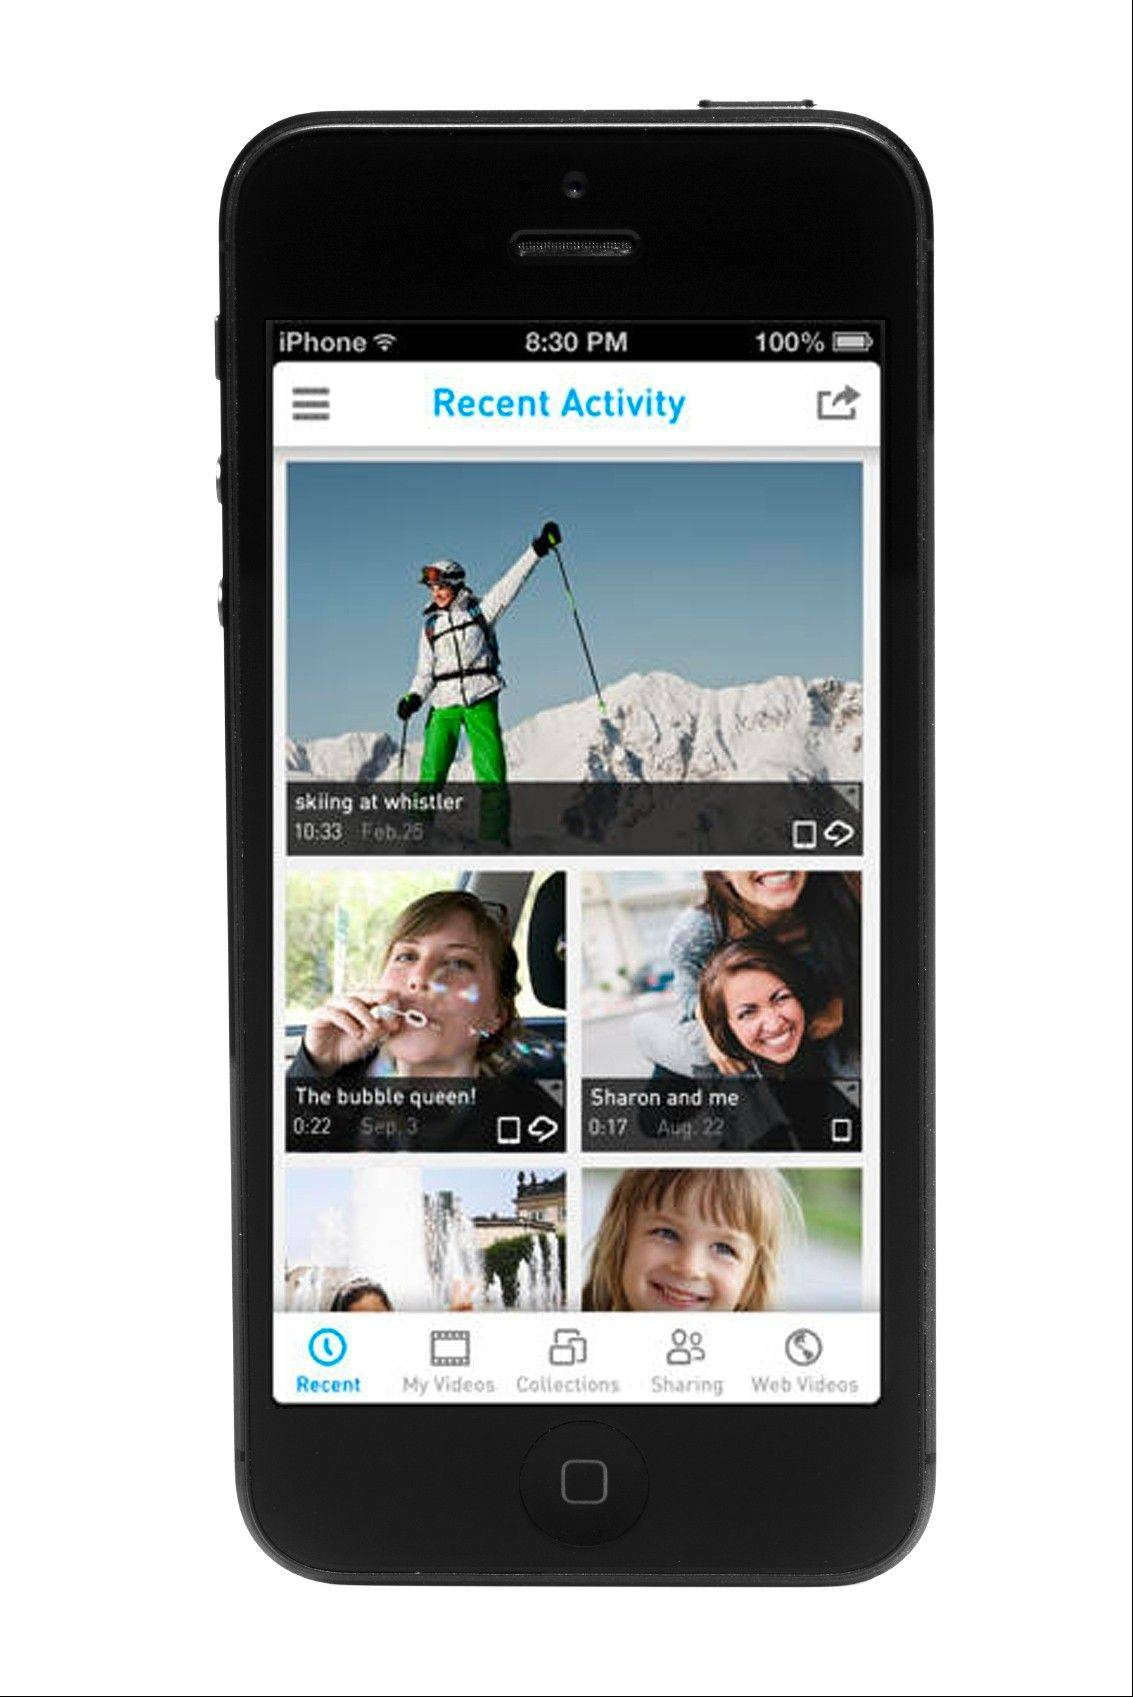 The RealPlayer Cloud app makes it easy to store and share video across multiple platforms.